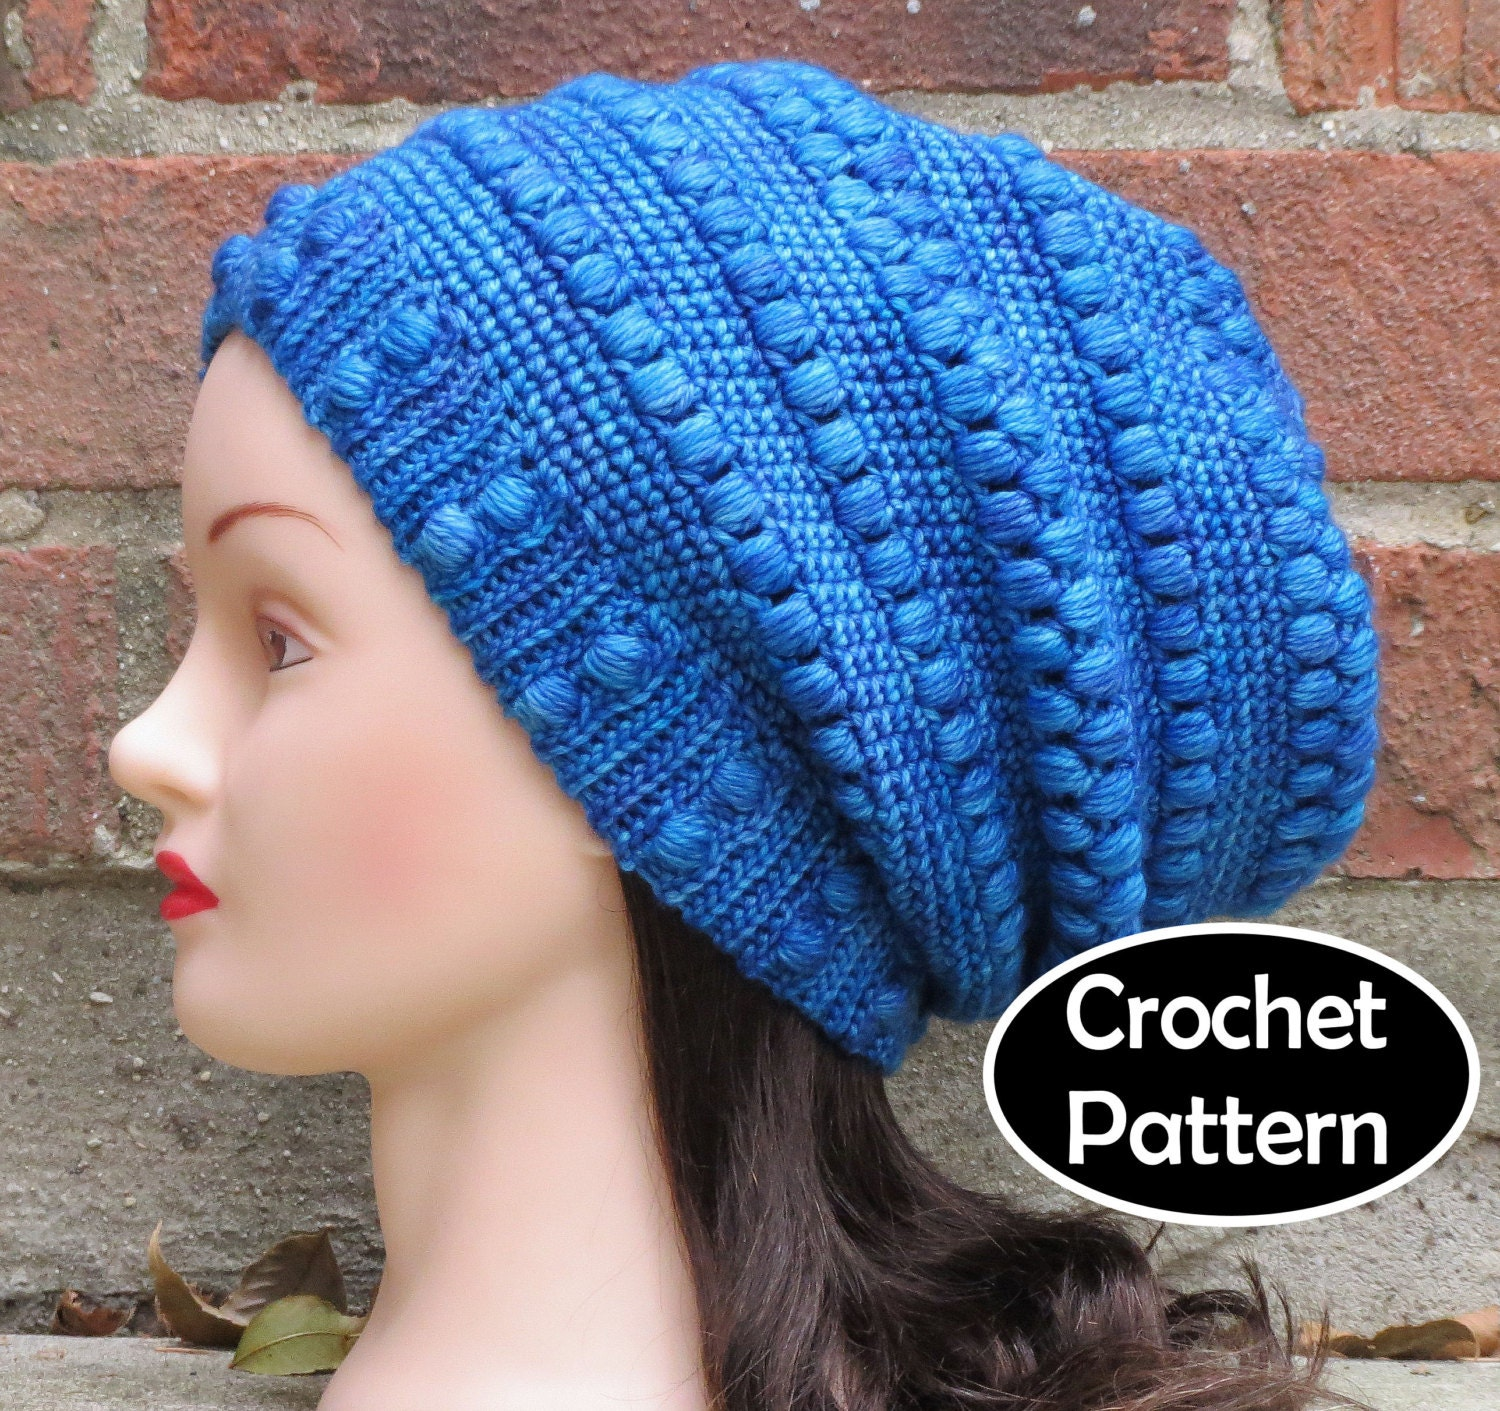 Crochet Hat Pattern Download : CROCHET HAT PATTERN Instant Download Nereida Slouchy Beanie